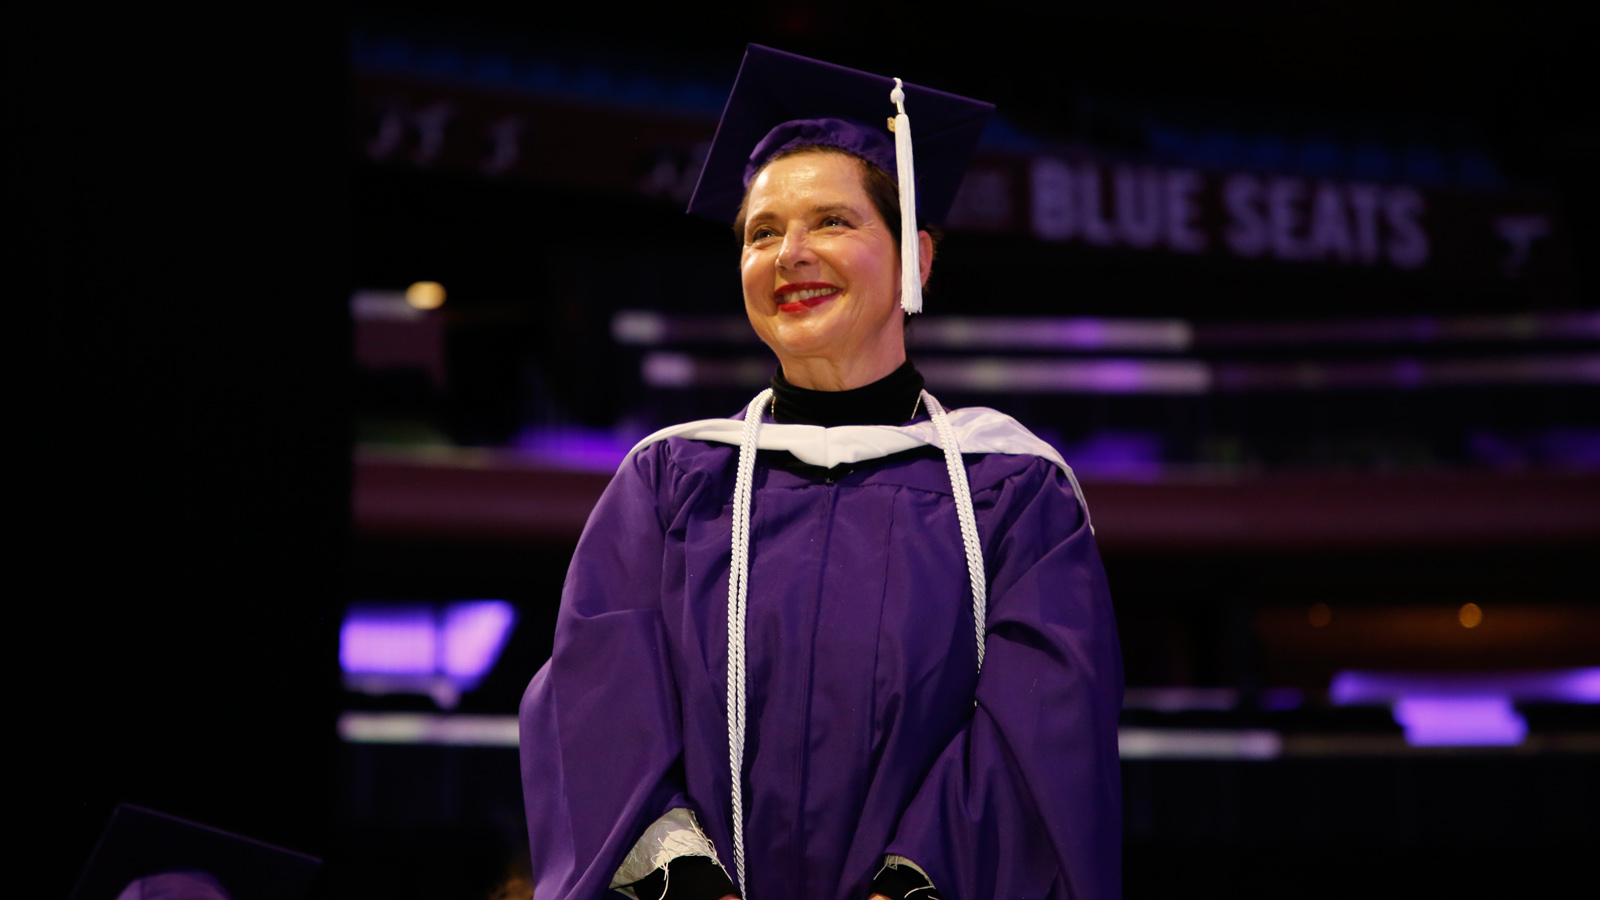 Isabella Rossellini Commencement